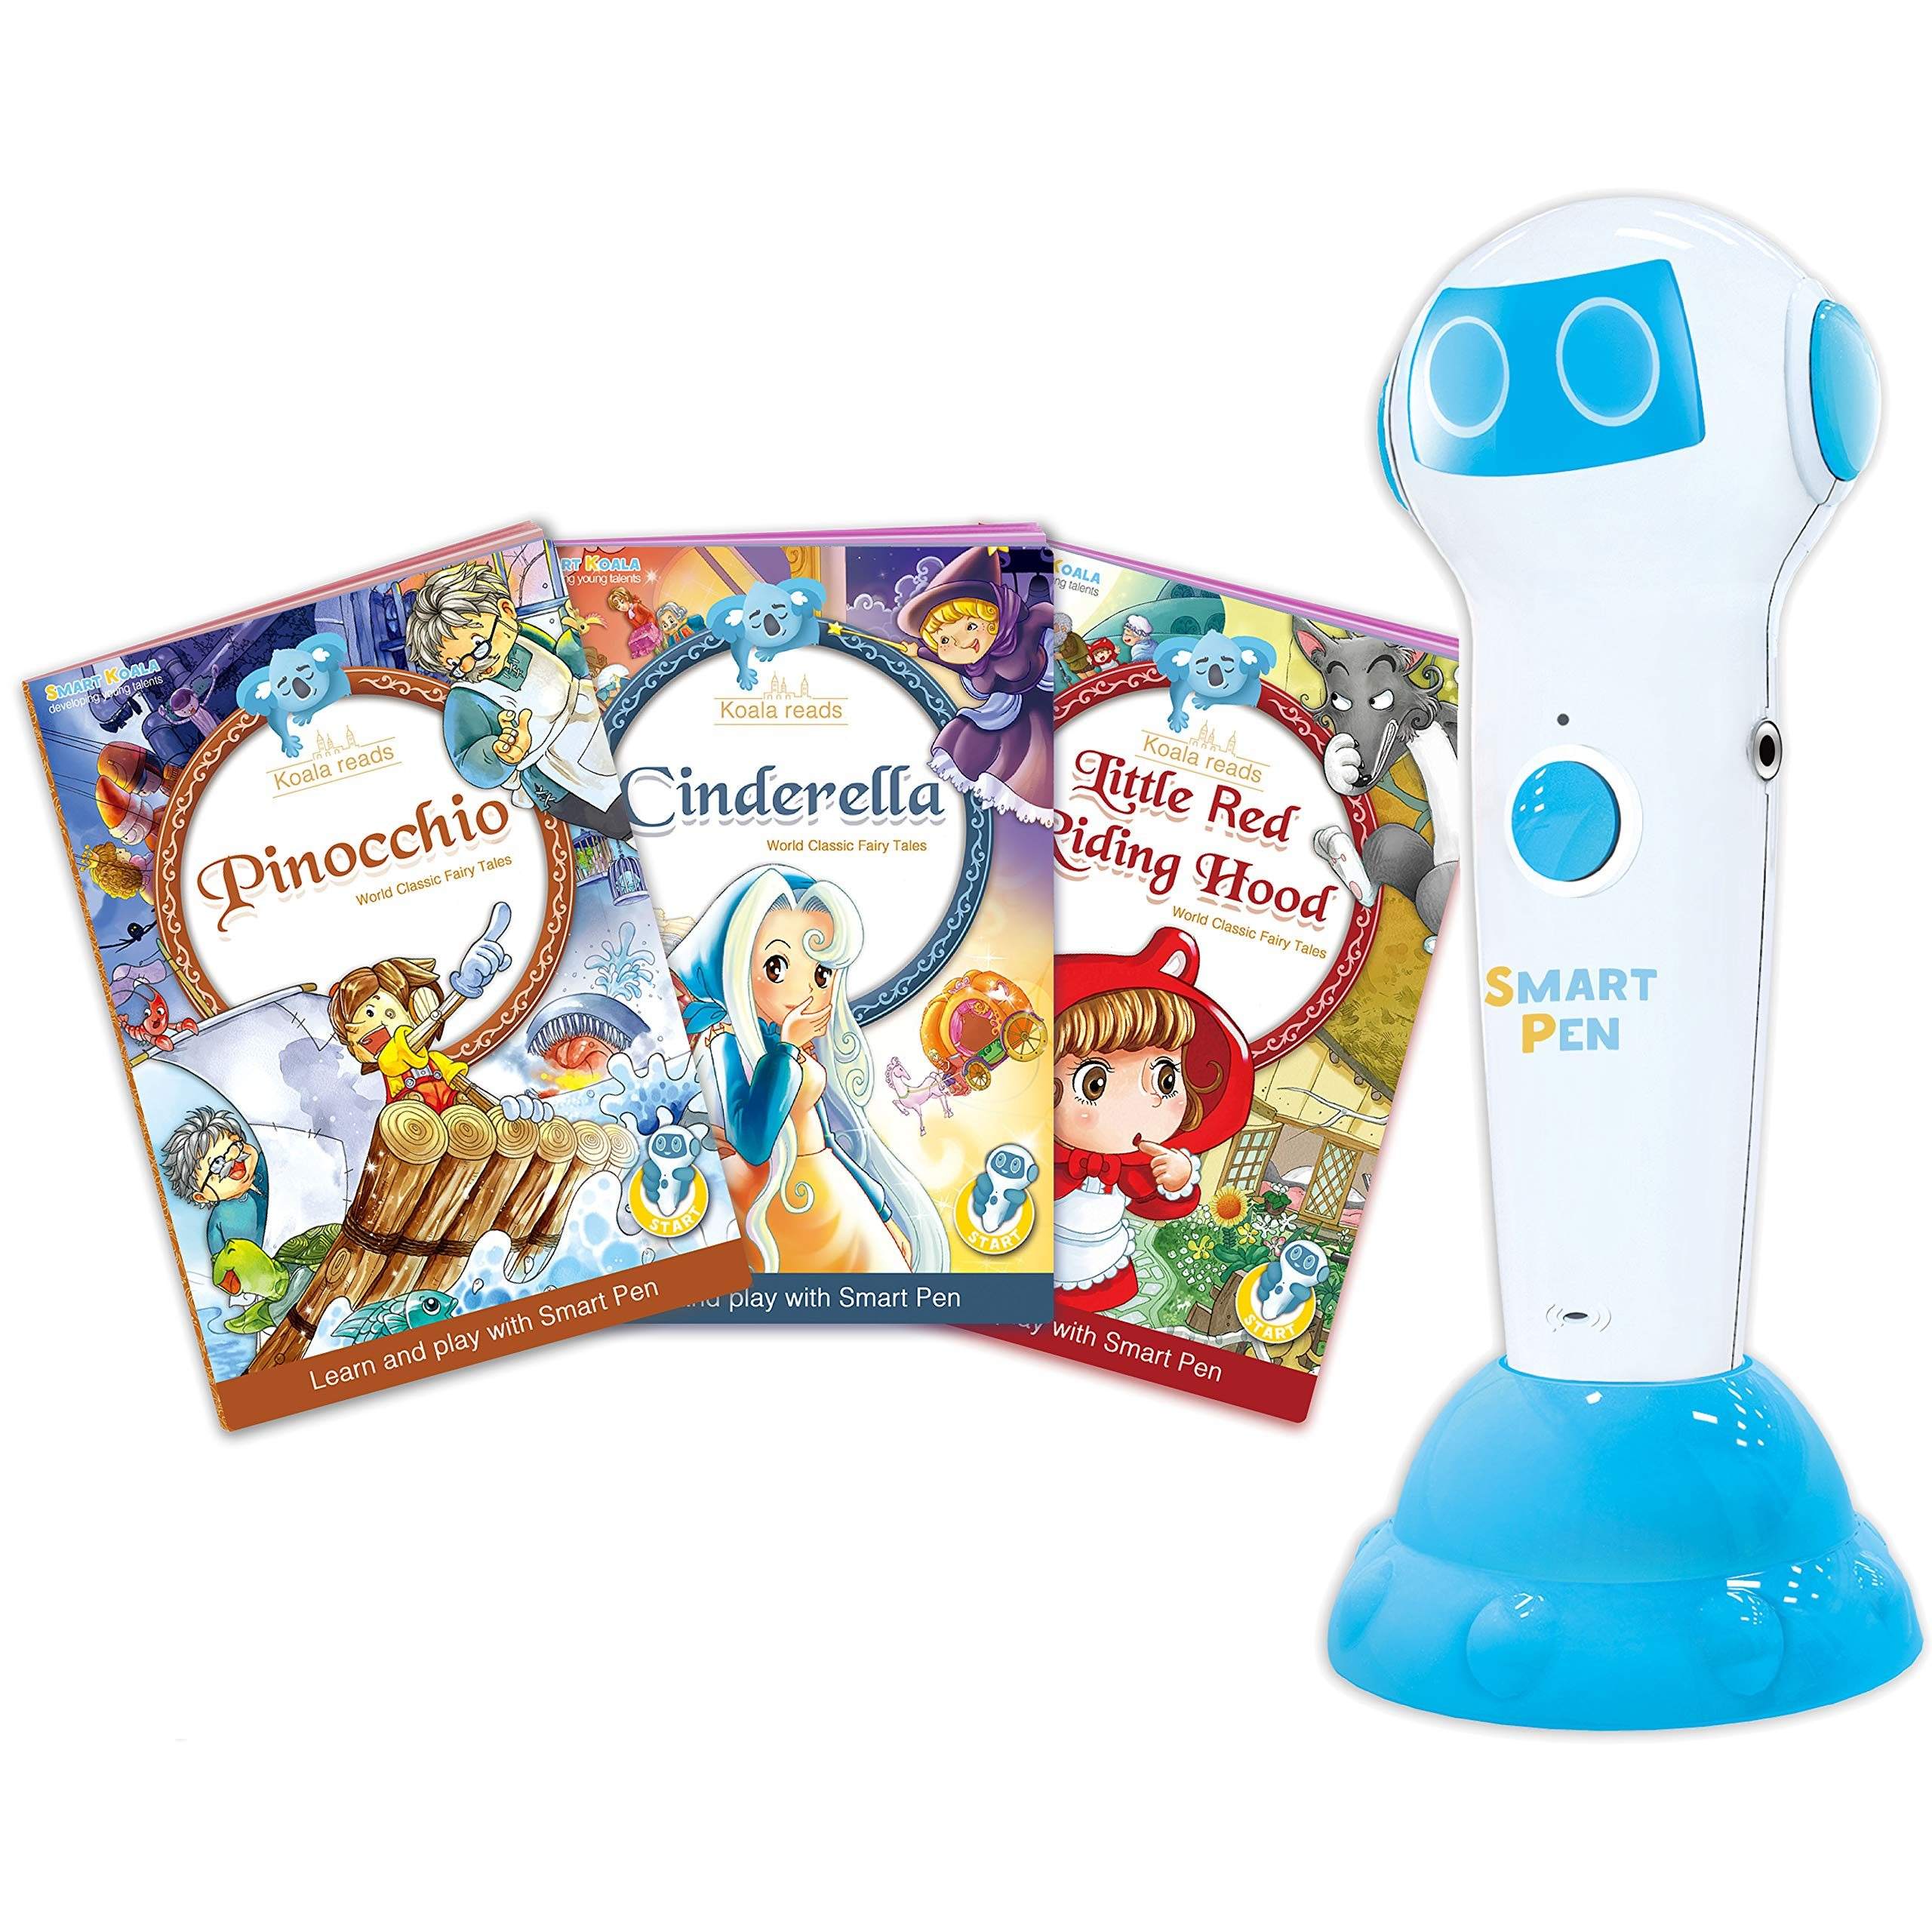 Talking Pen + 3 Fairy Tales Bundle (Pinocchio, Cinderella, Red Hood). The most Entertaining Books for learning Reading and Spelling Skills. English and foreign Languages (Spanish, German for free) by Smart Koala (Image #1)